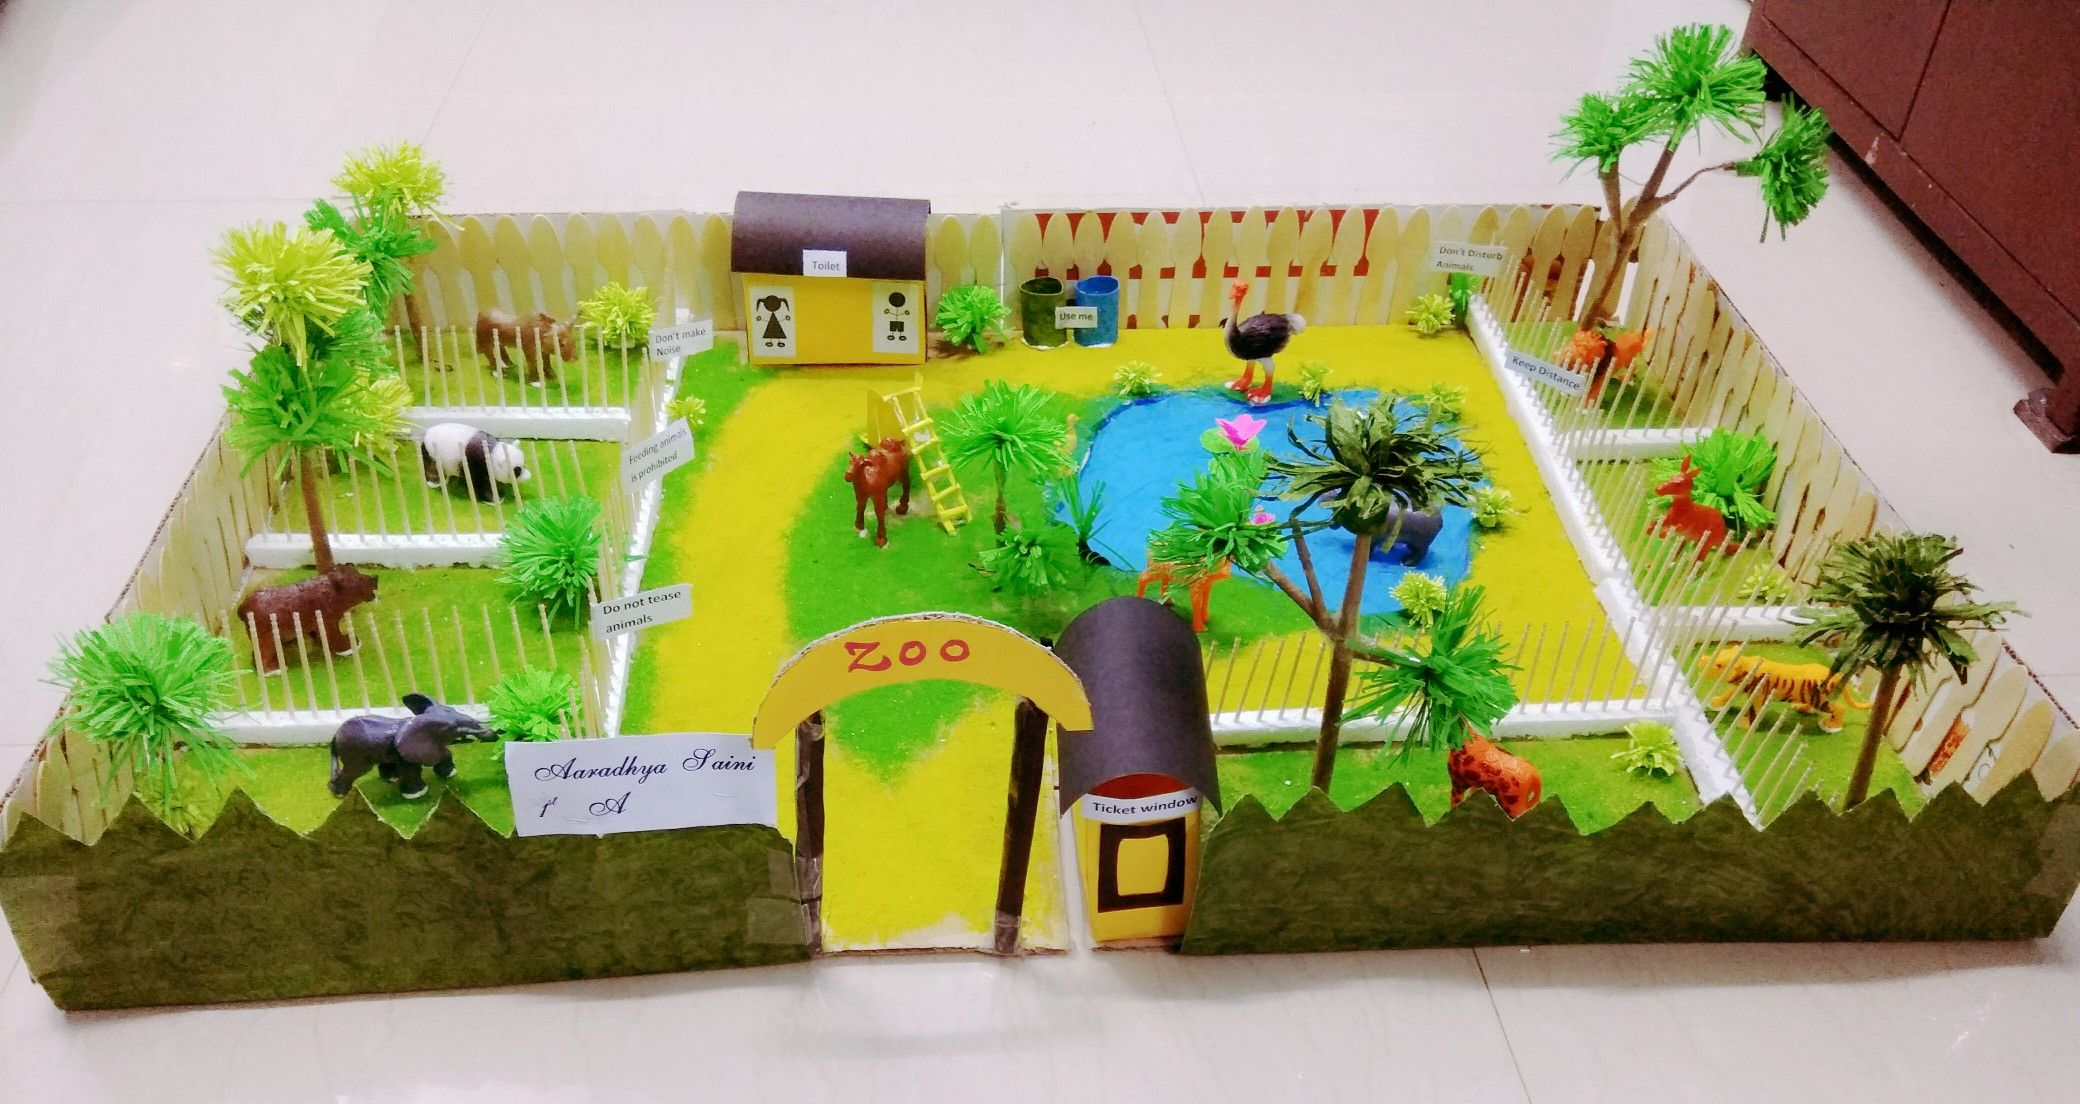 Zoo Model School Project (With images) | Kids zoo, Zoo ...